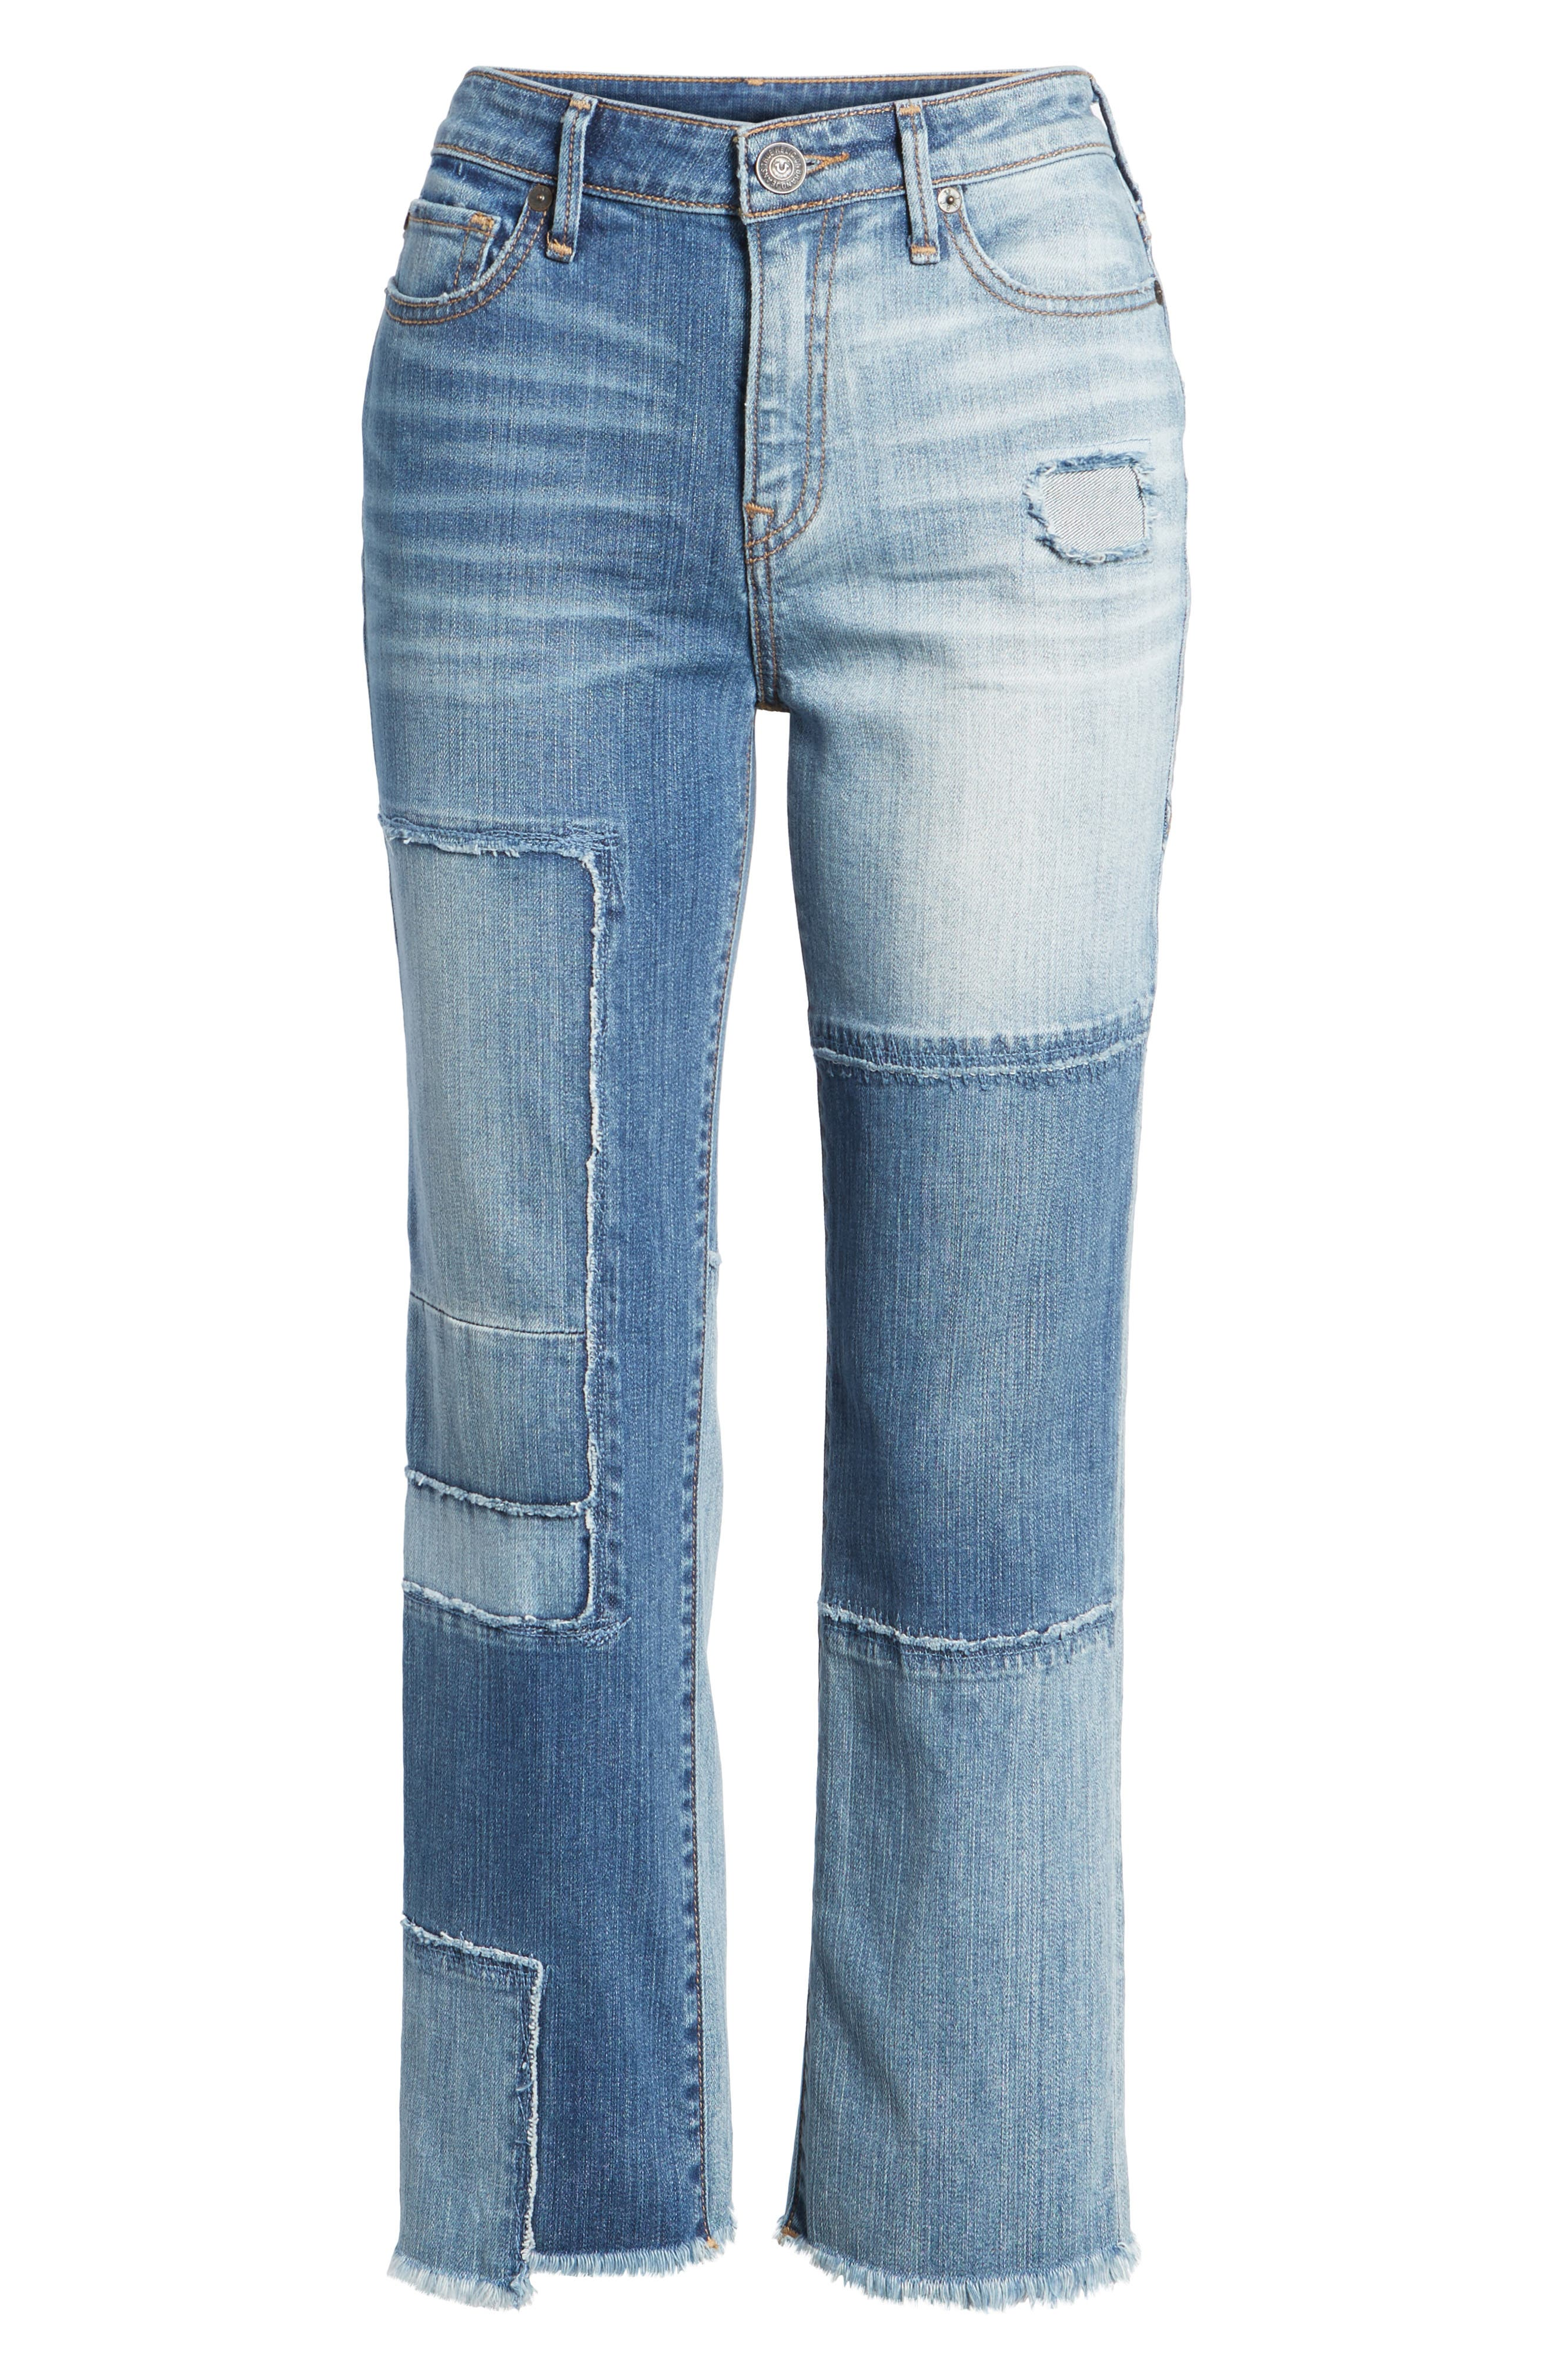 Stovepipe High Waist Crop Jeans,                             Alternate thumbnail 7, color,                             401